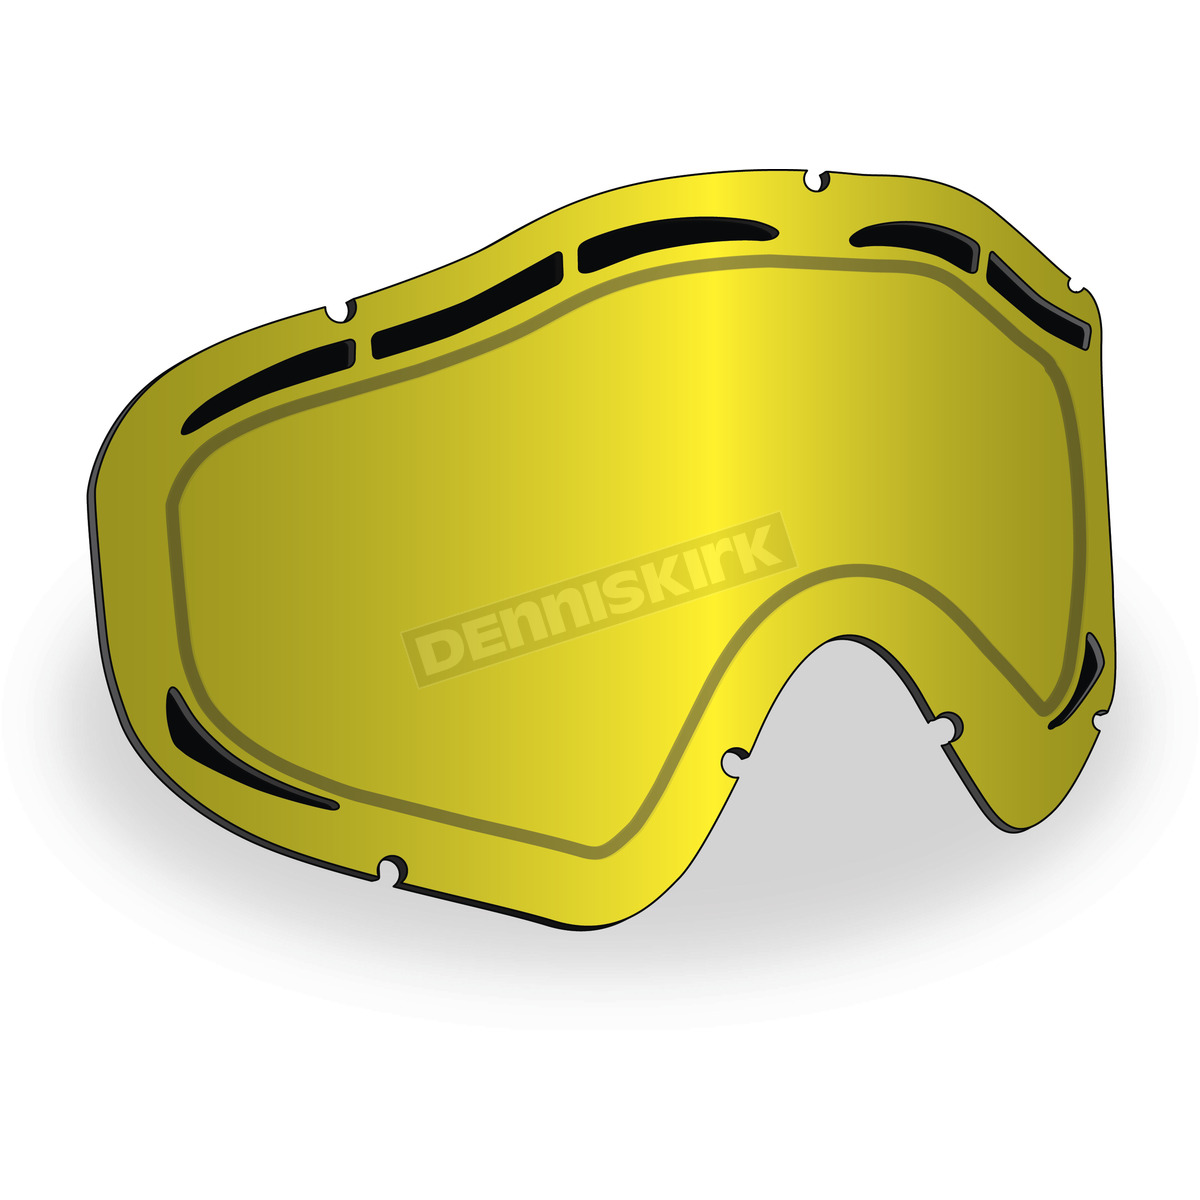 d47ce39e21 509 Polarized Yellow Maxvent Replacement Lens for Sinister X5 Goggles - 509 -X5LEN-15